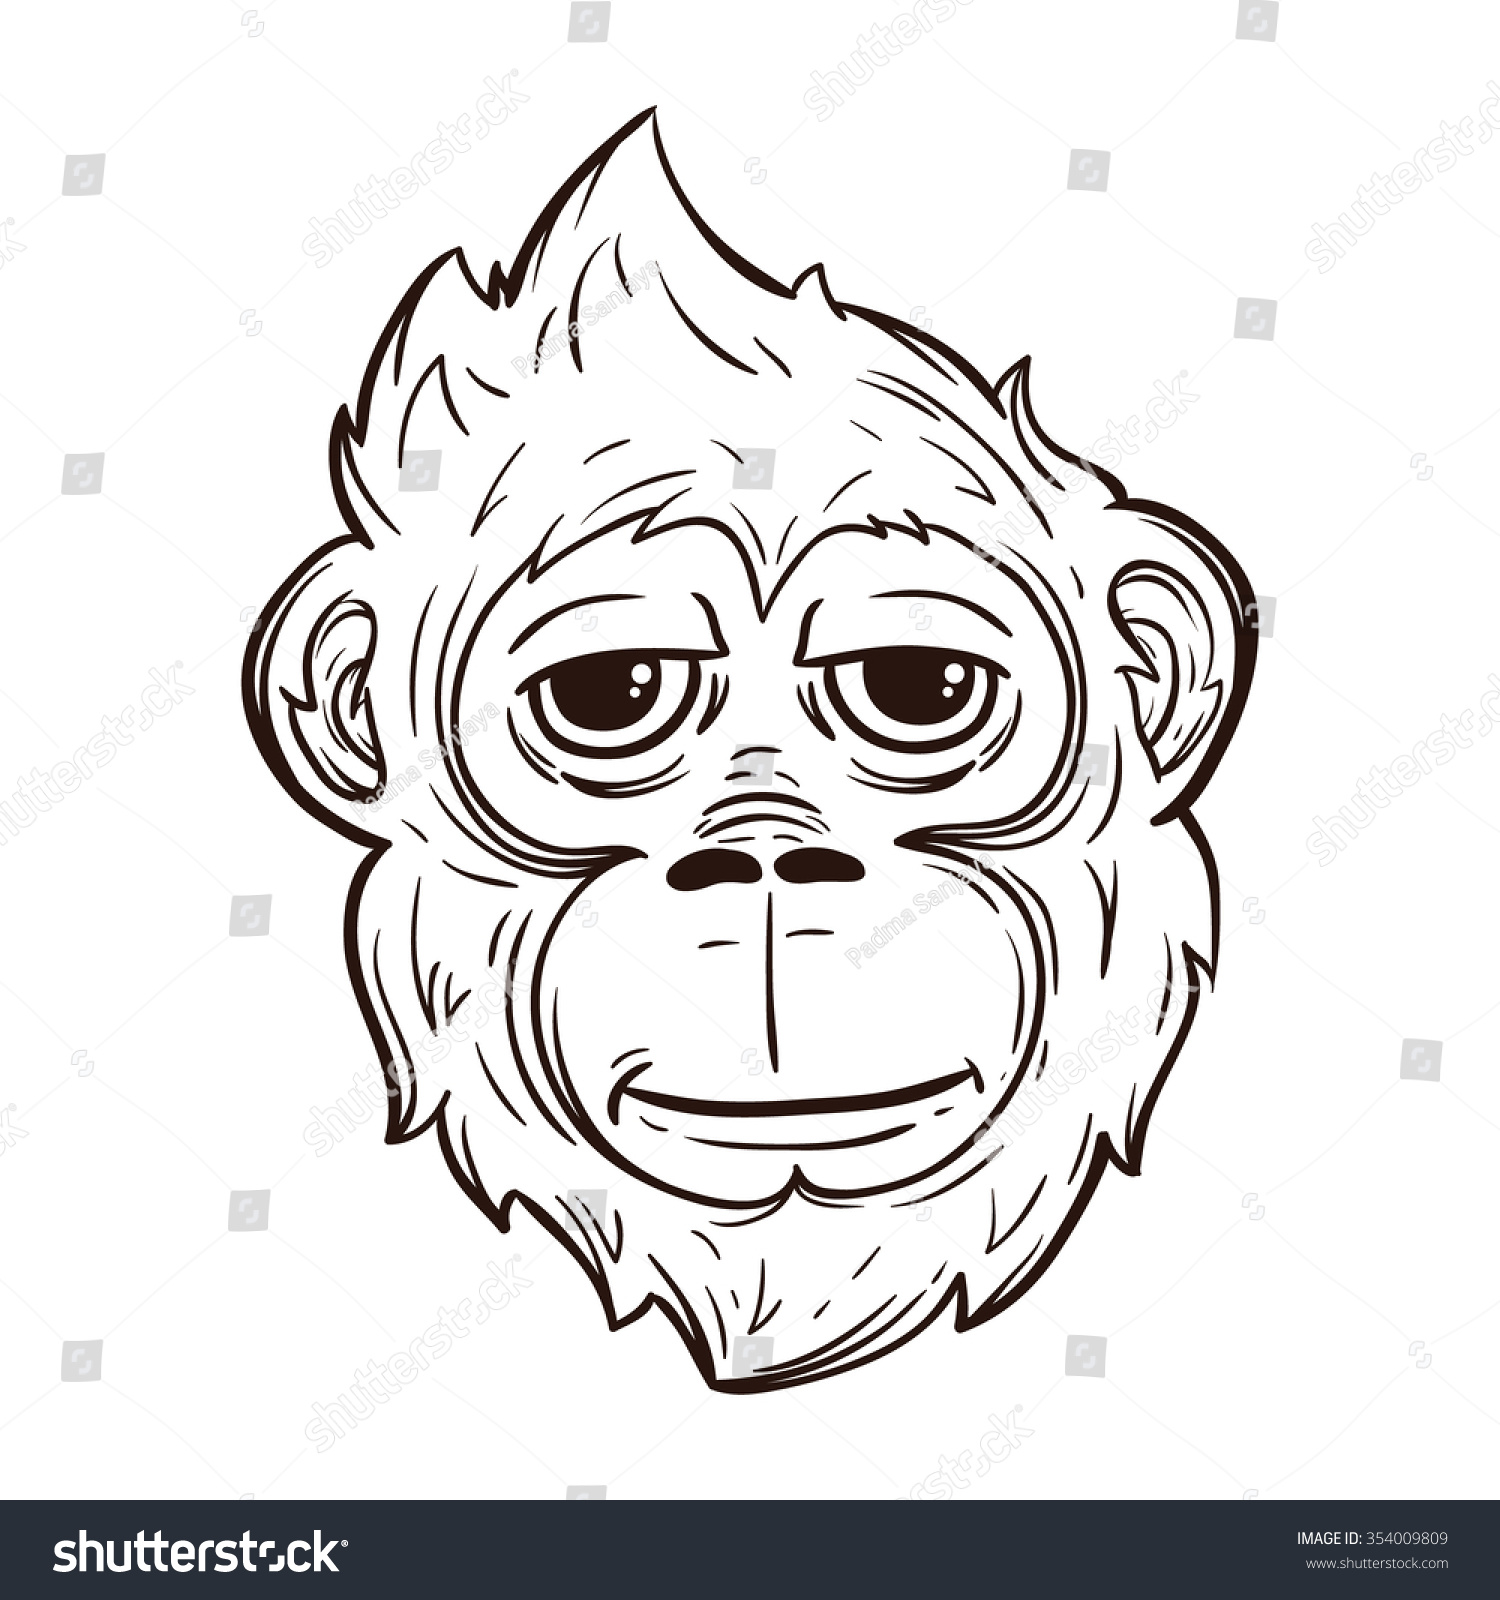 Gorilla Face Line Drawing : Cool monkey face line art style stock vector